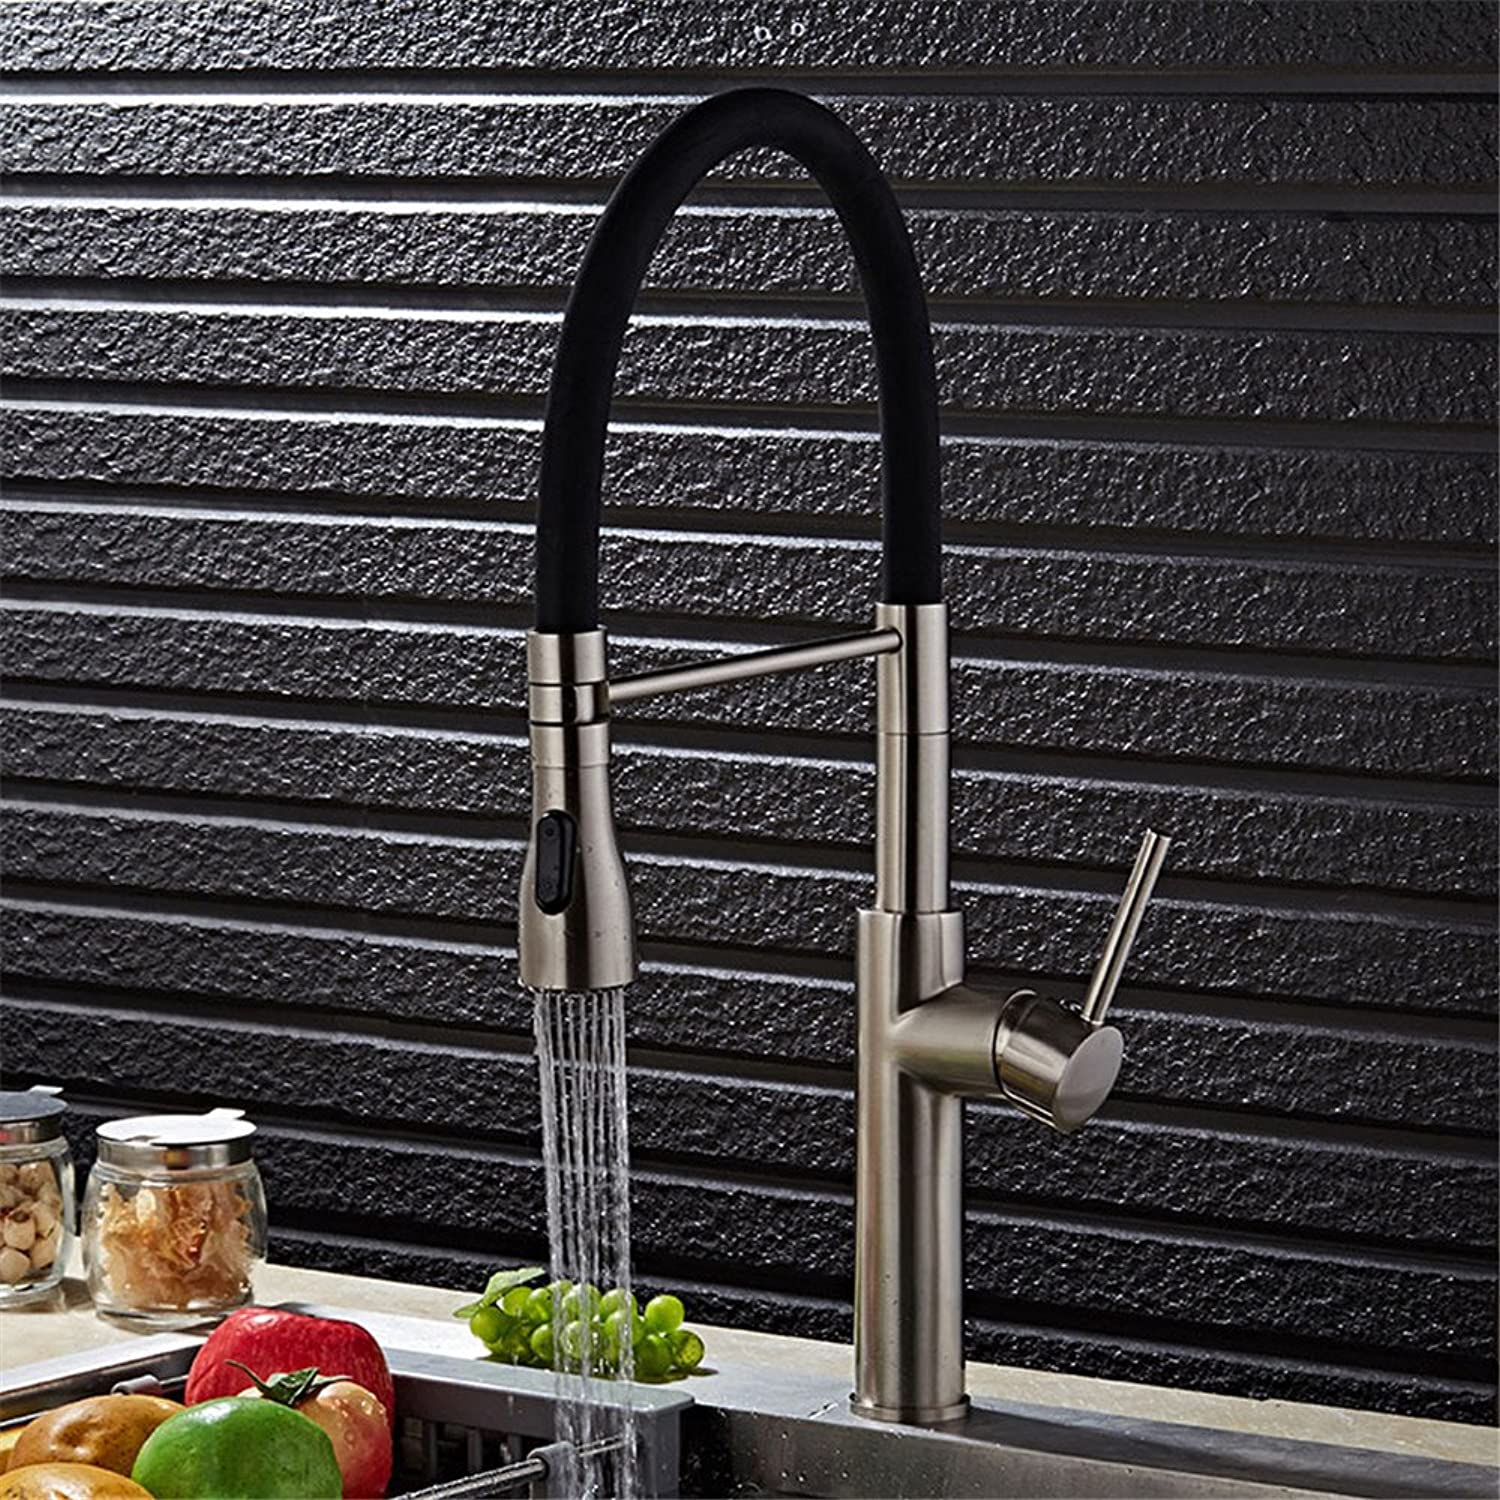 Bijjaladeva Antique Bathroom Sink Vessel Faucet Basin Mixer Tap Kitchen faucet telescoping faucet Brushed Silver Spiral washing dishes to draw-down of cold-hot tank water faucet